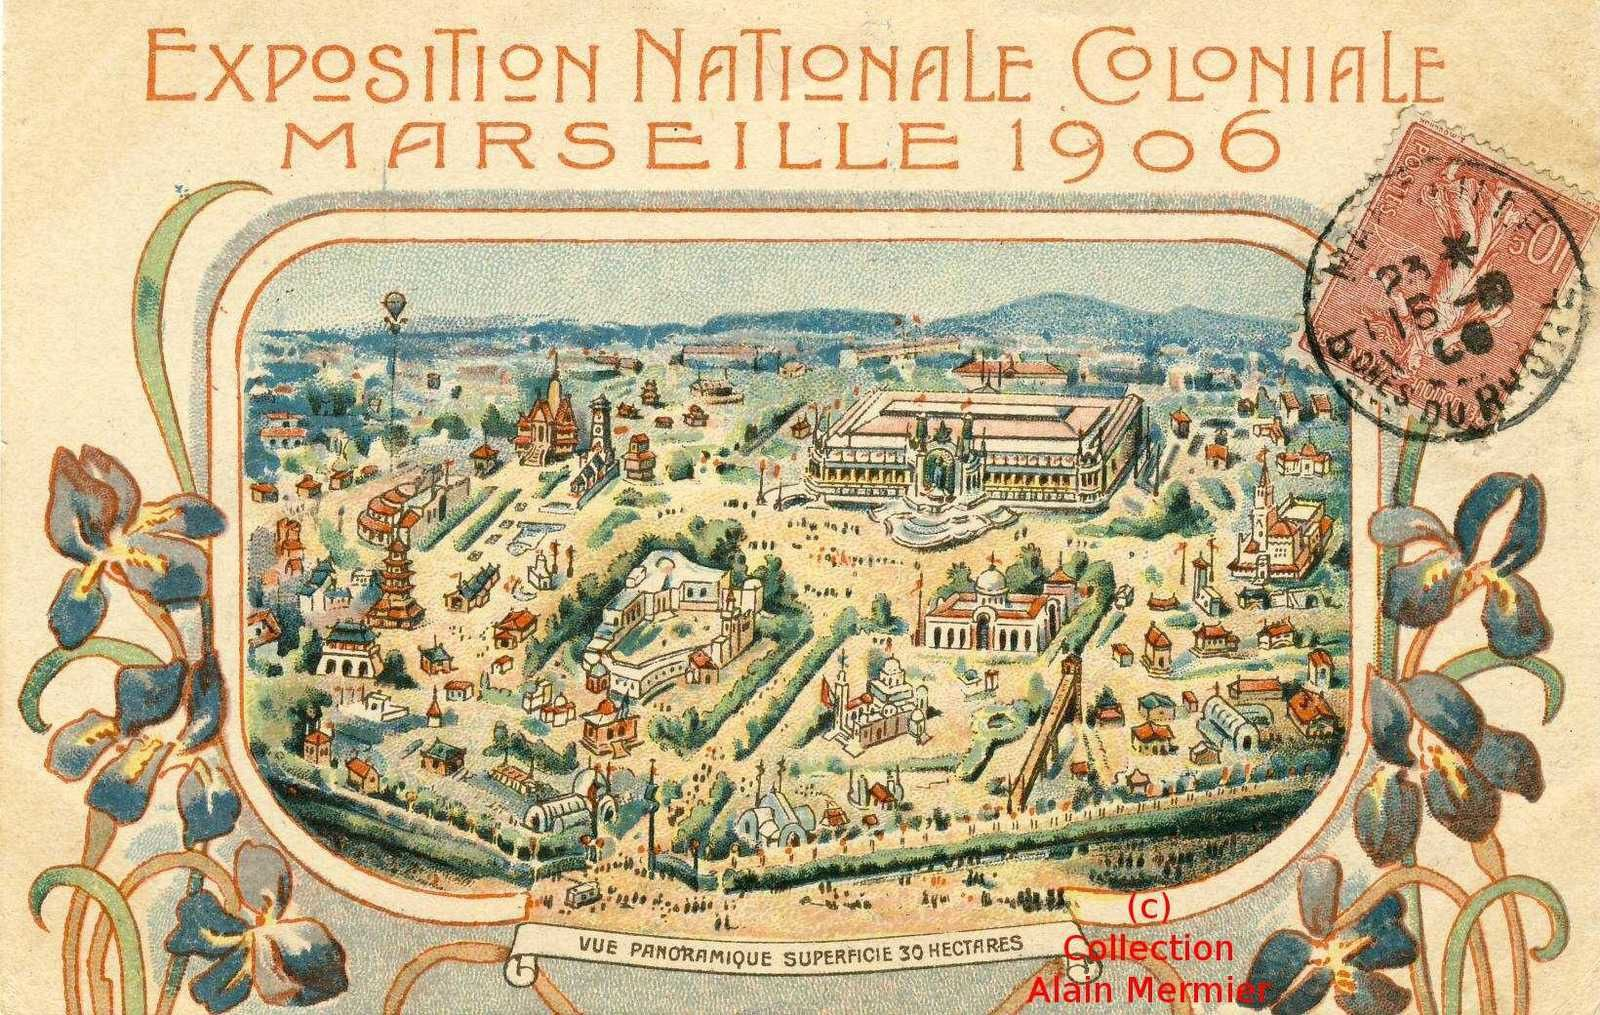 >>>>>>>>>>   EXPOSITION NATIONALE COLONIALE . MARSEILLE - 1906  <<<<<<